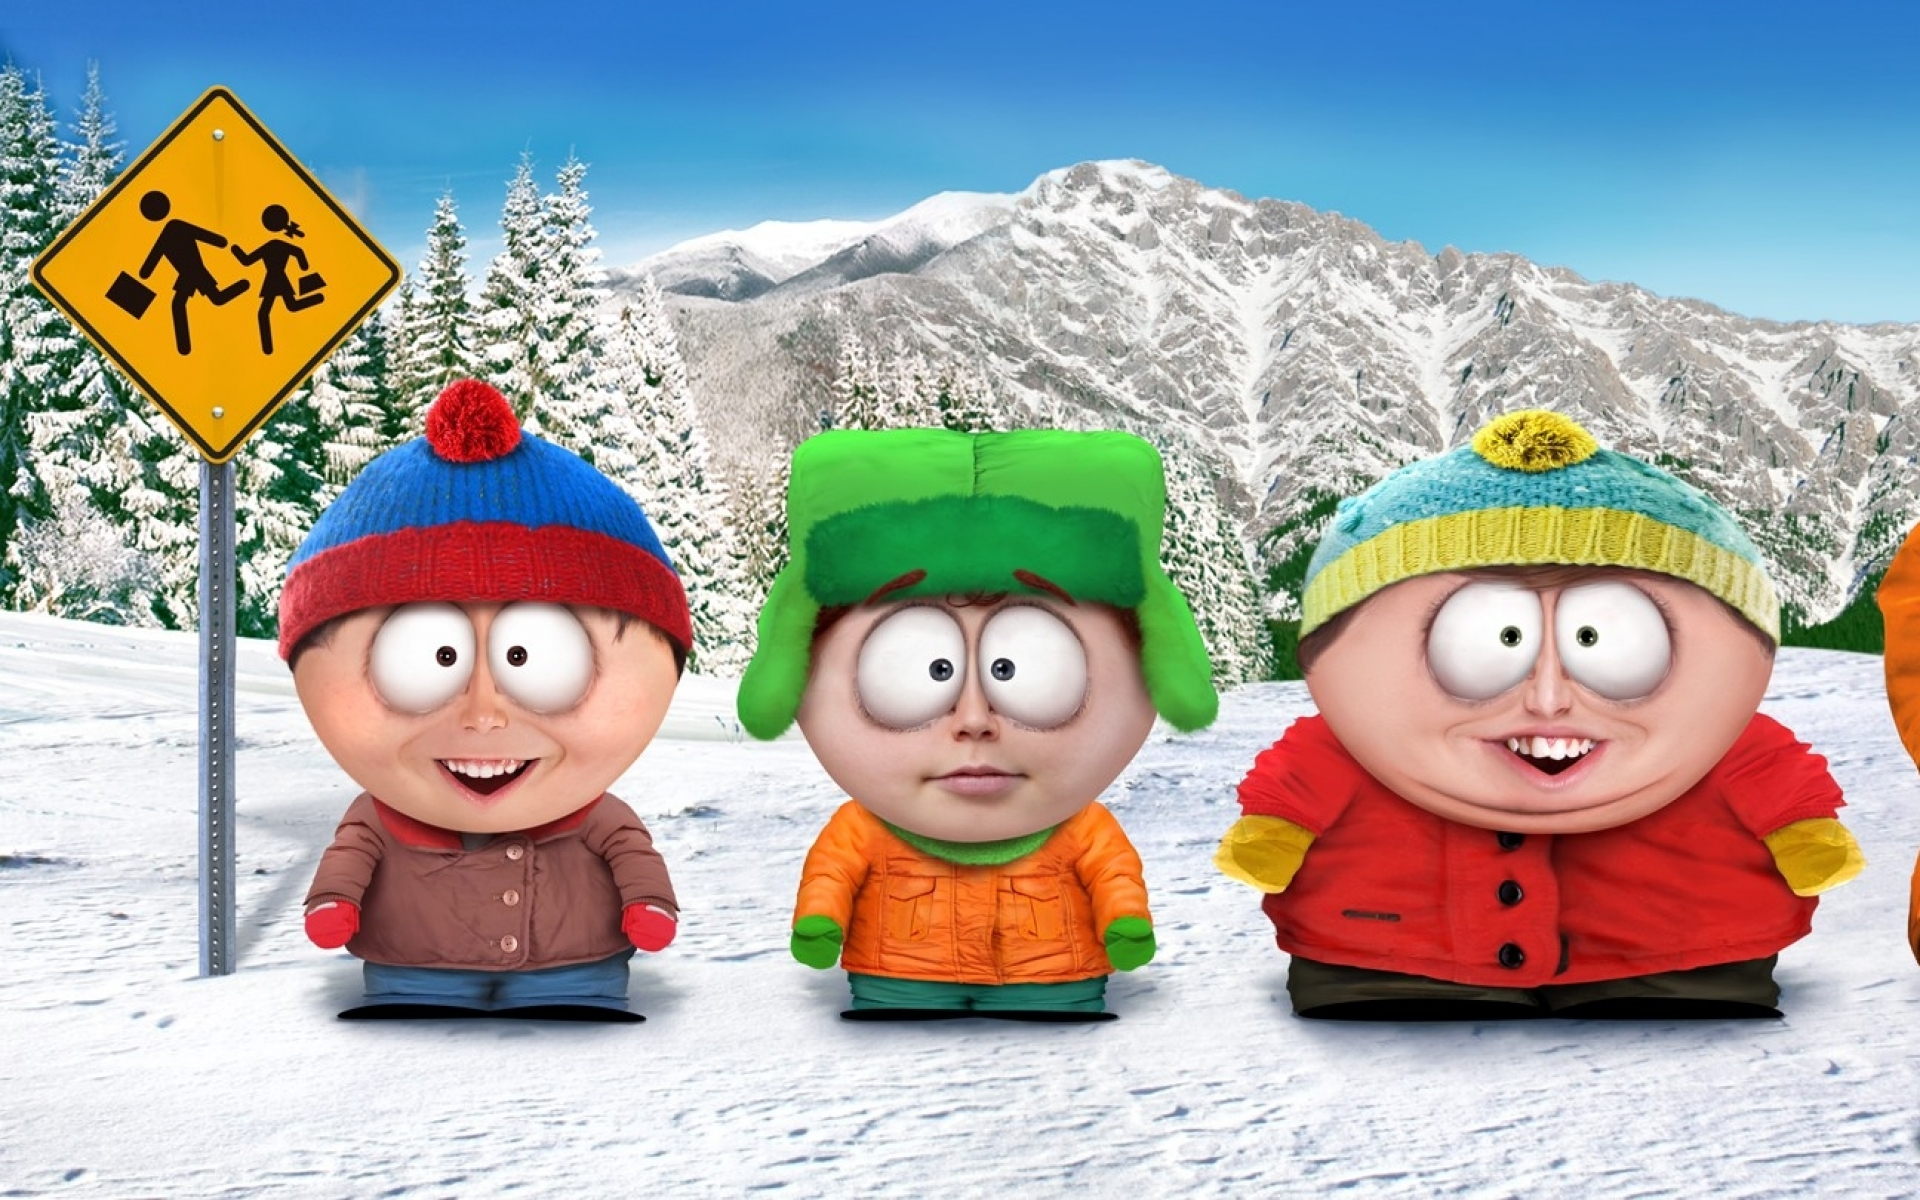 Coders South Park Fan Club Wallpaper Abyss TV Show South Park 294901 1920x1200